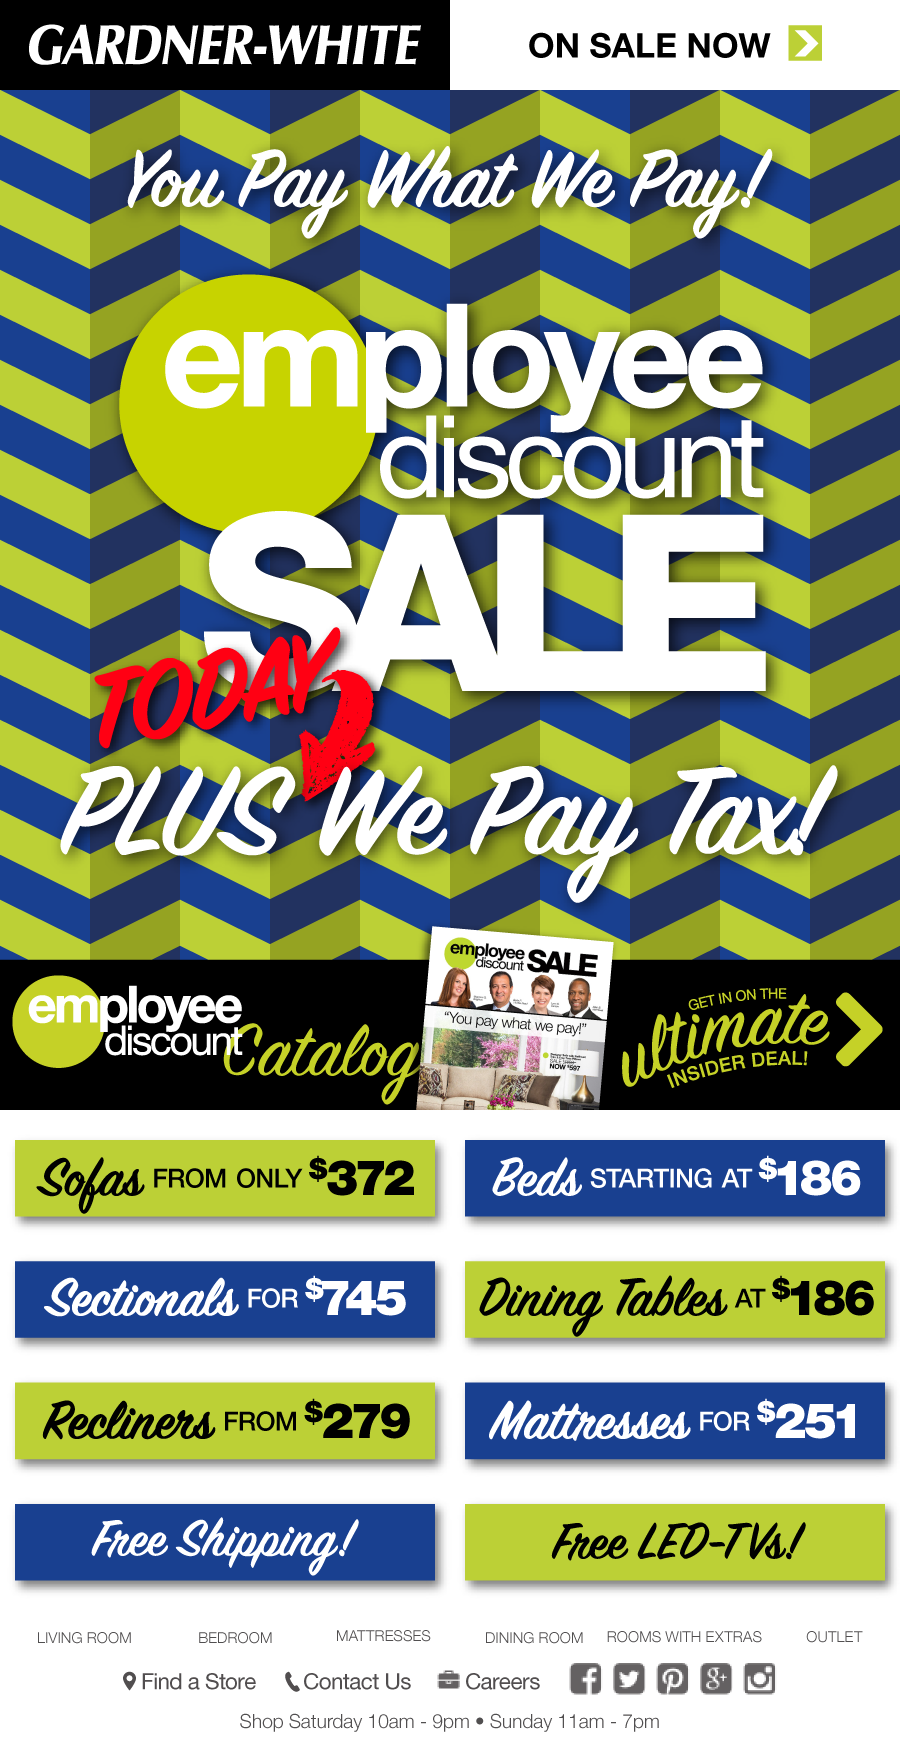 07-22-17_EmployeeDiscount-Splash.png